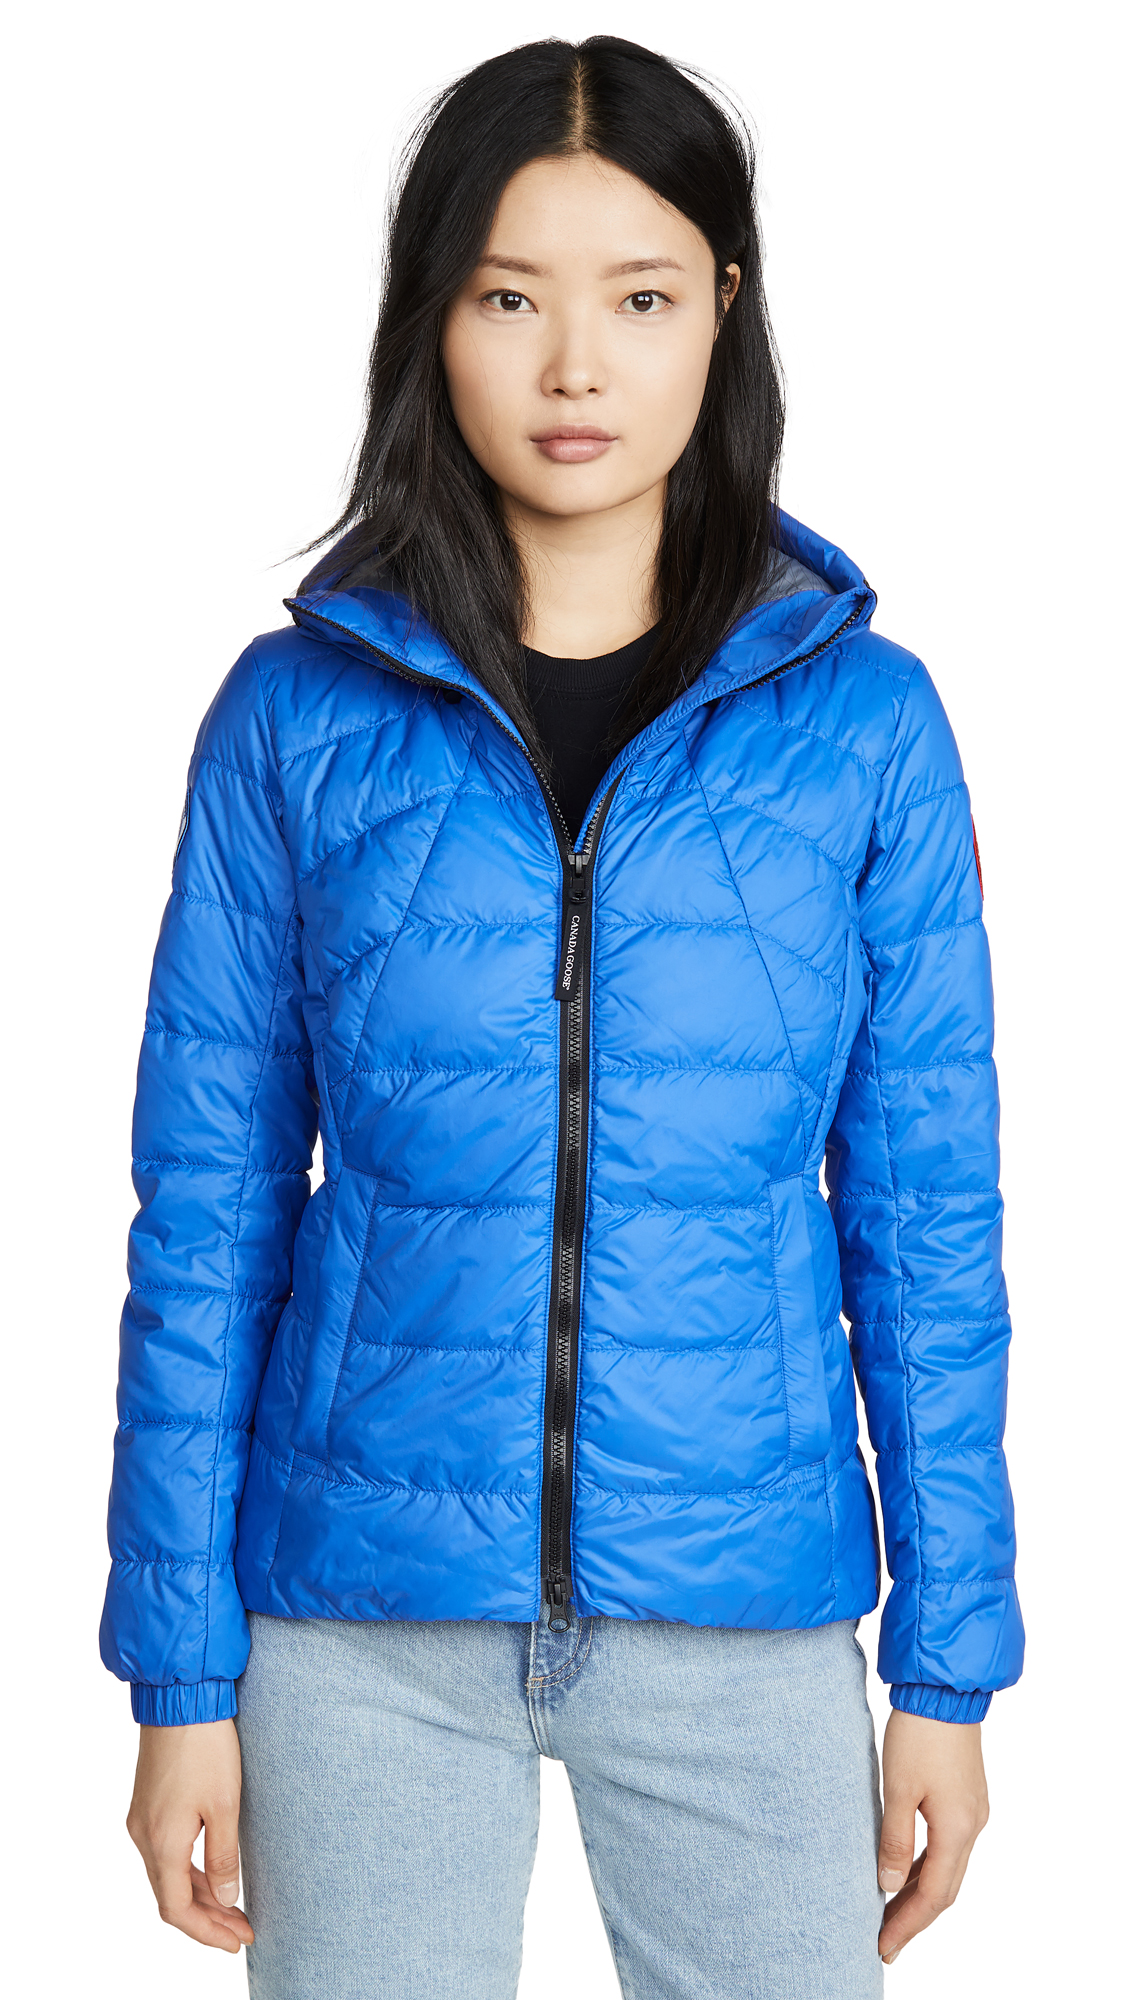 Buy Canada Goose Abbott Hoodie online beautiful Canada Goose Jackets, Coats, Down Jackets